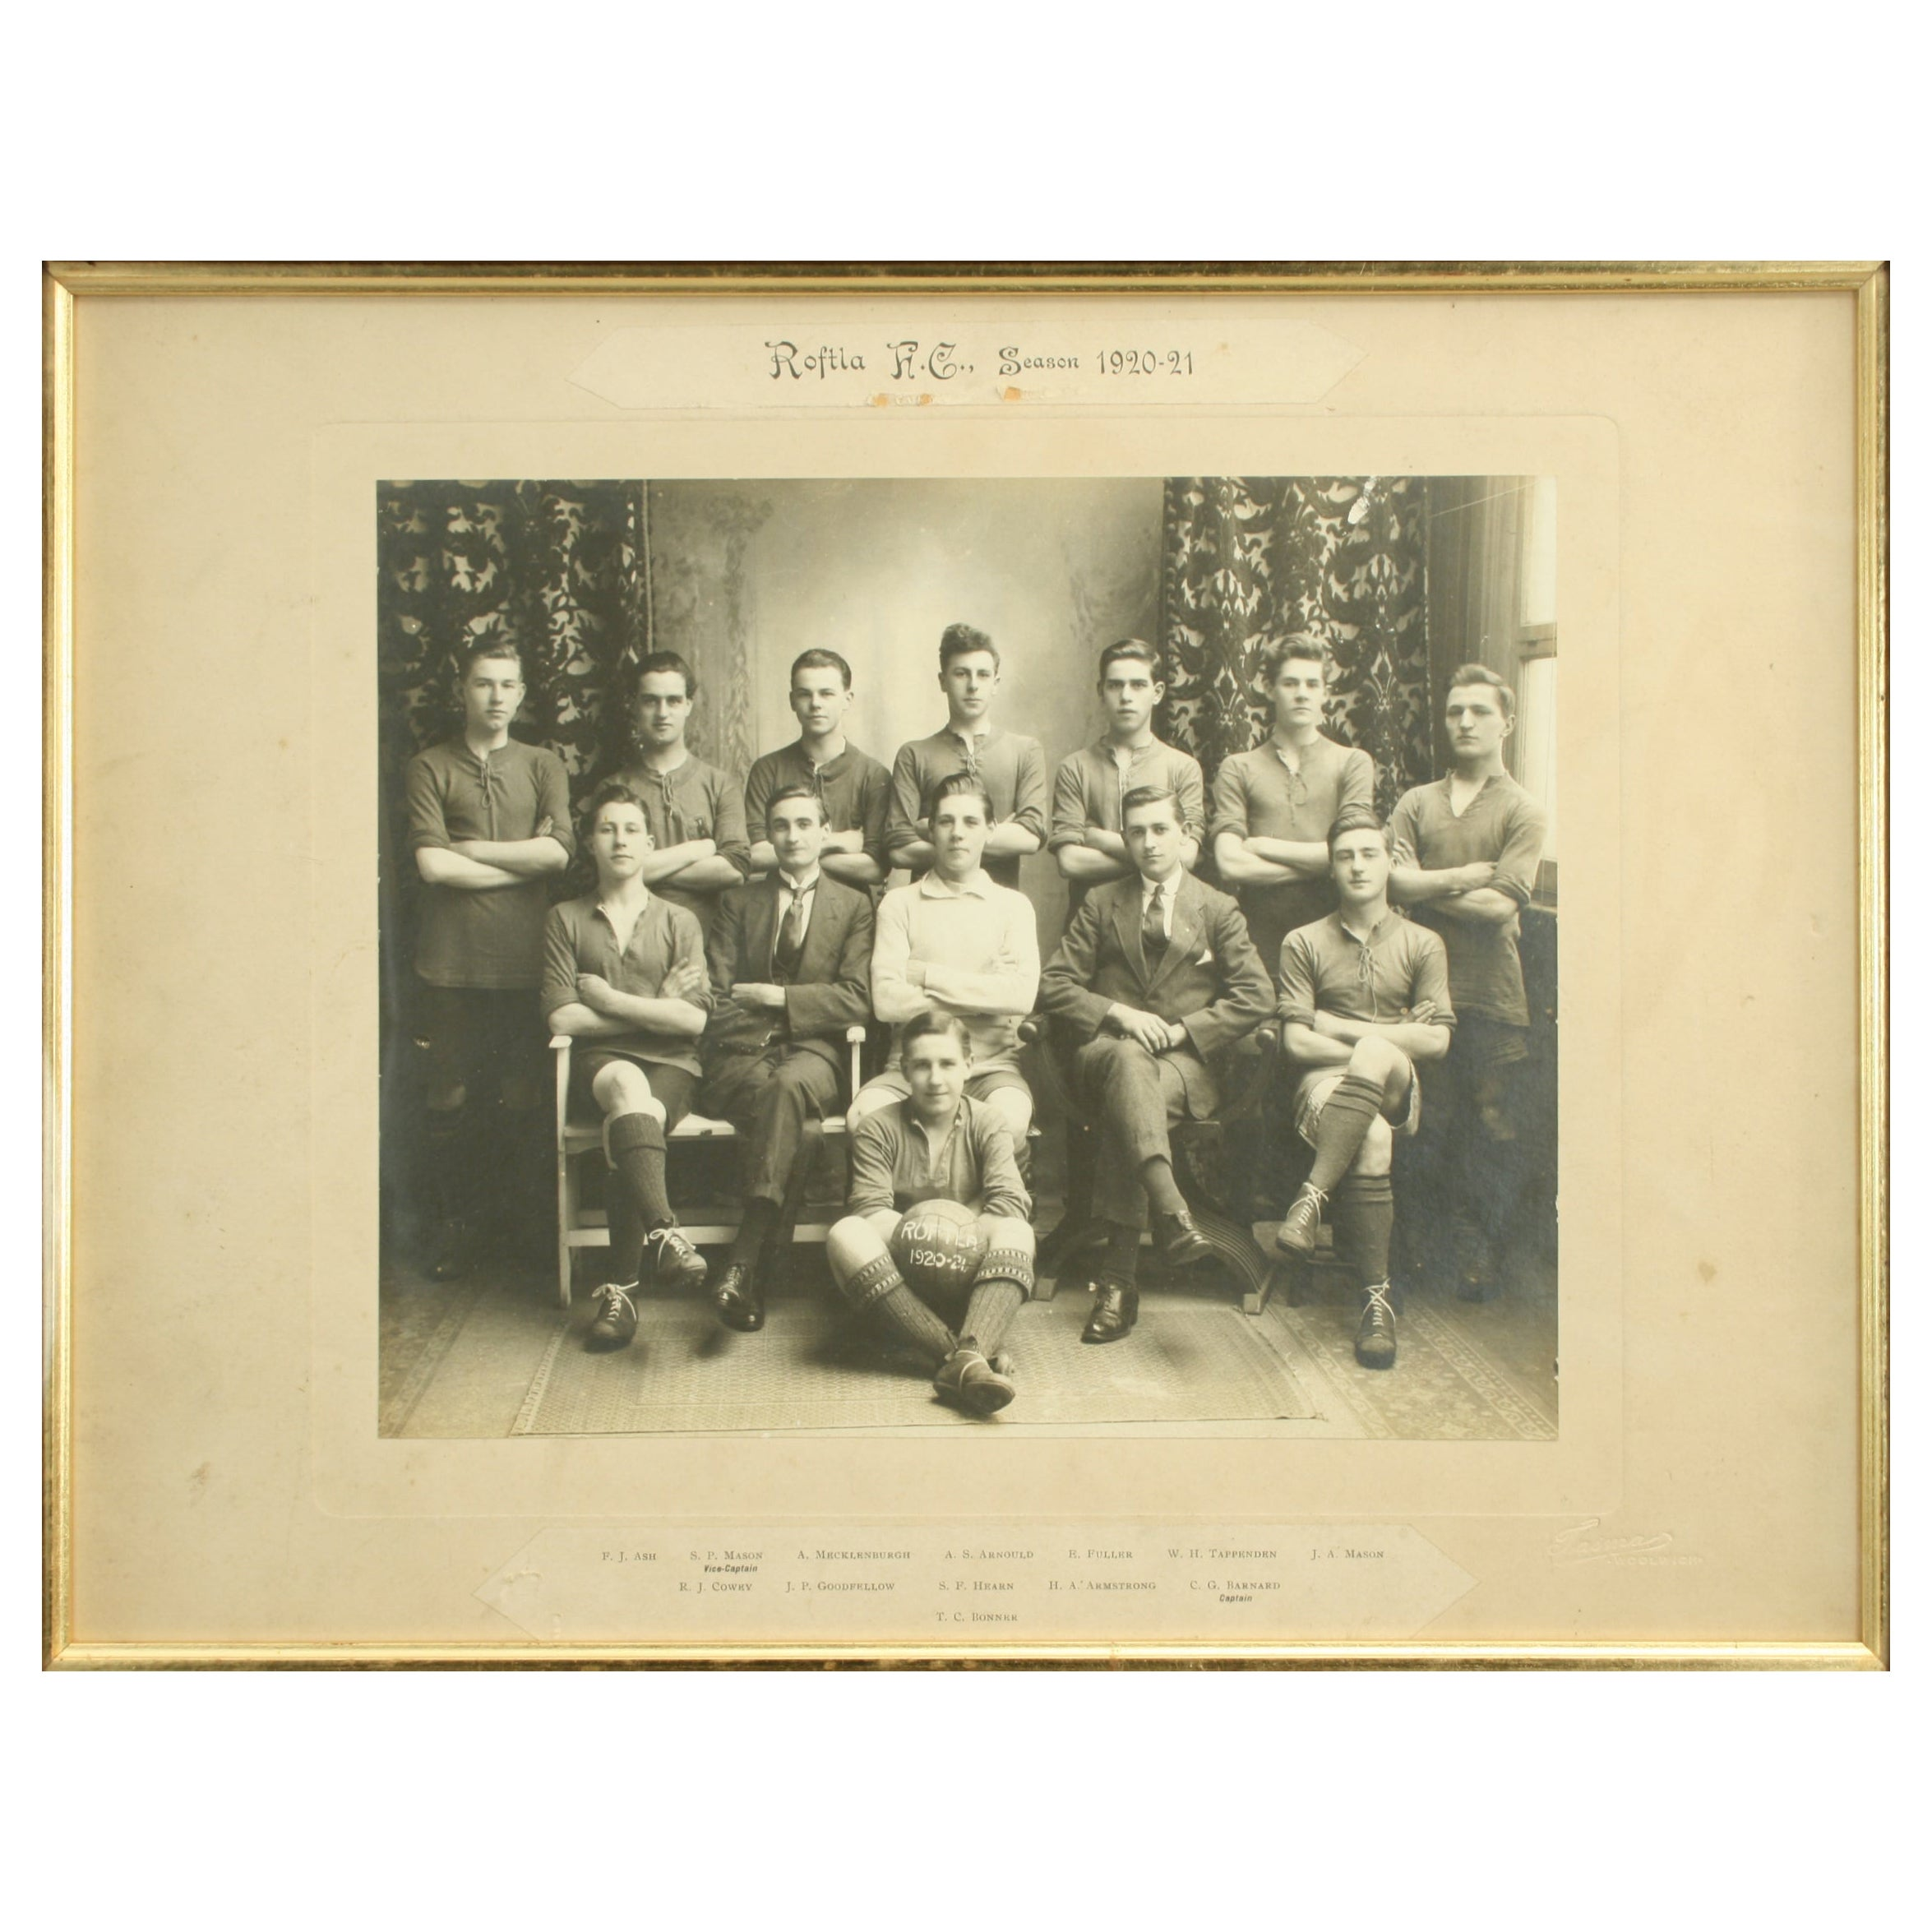 Vintage Football Team Photograph, Roftla F.C